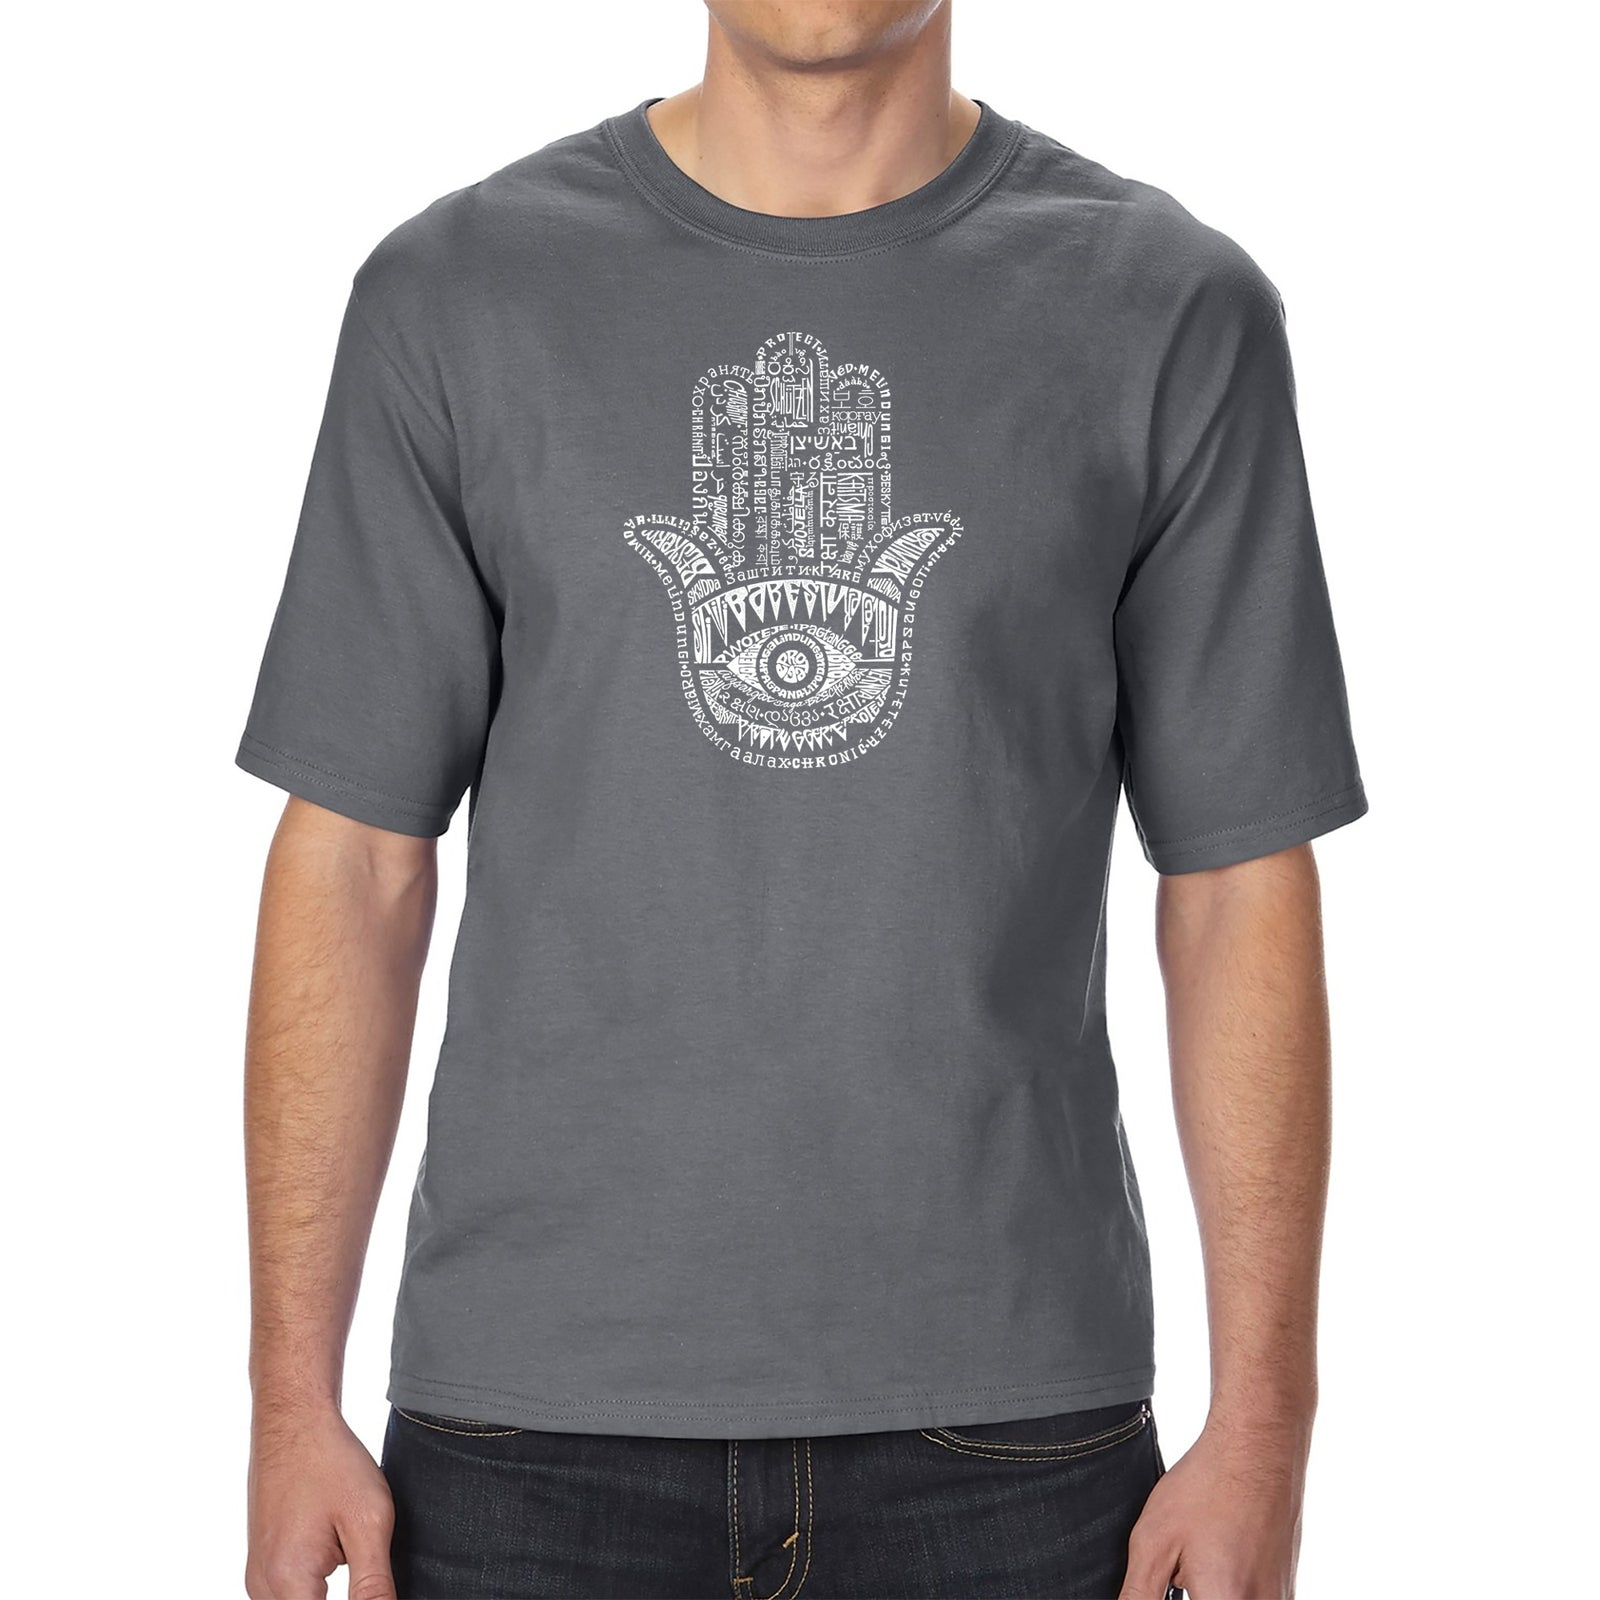 Men's Tall and Long Word Art T-shirt - Hamsa